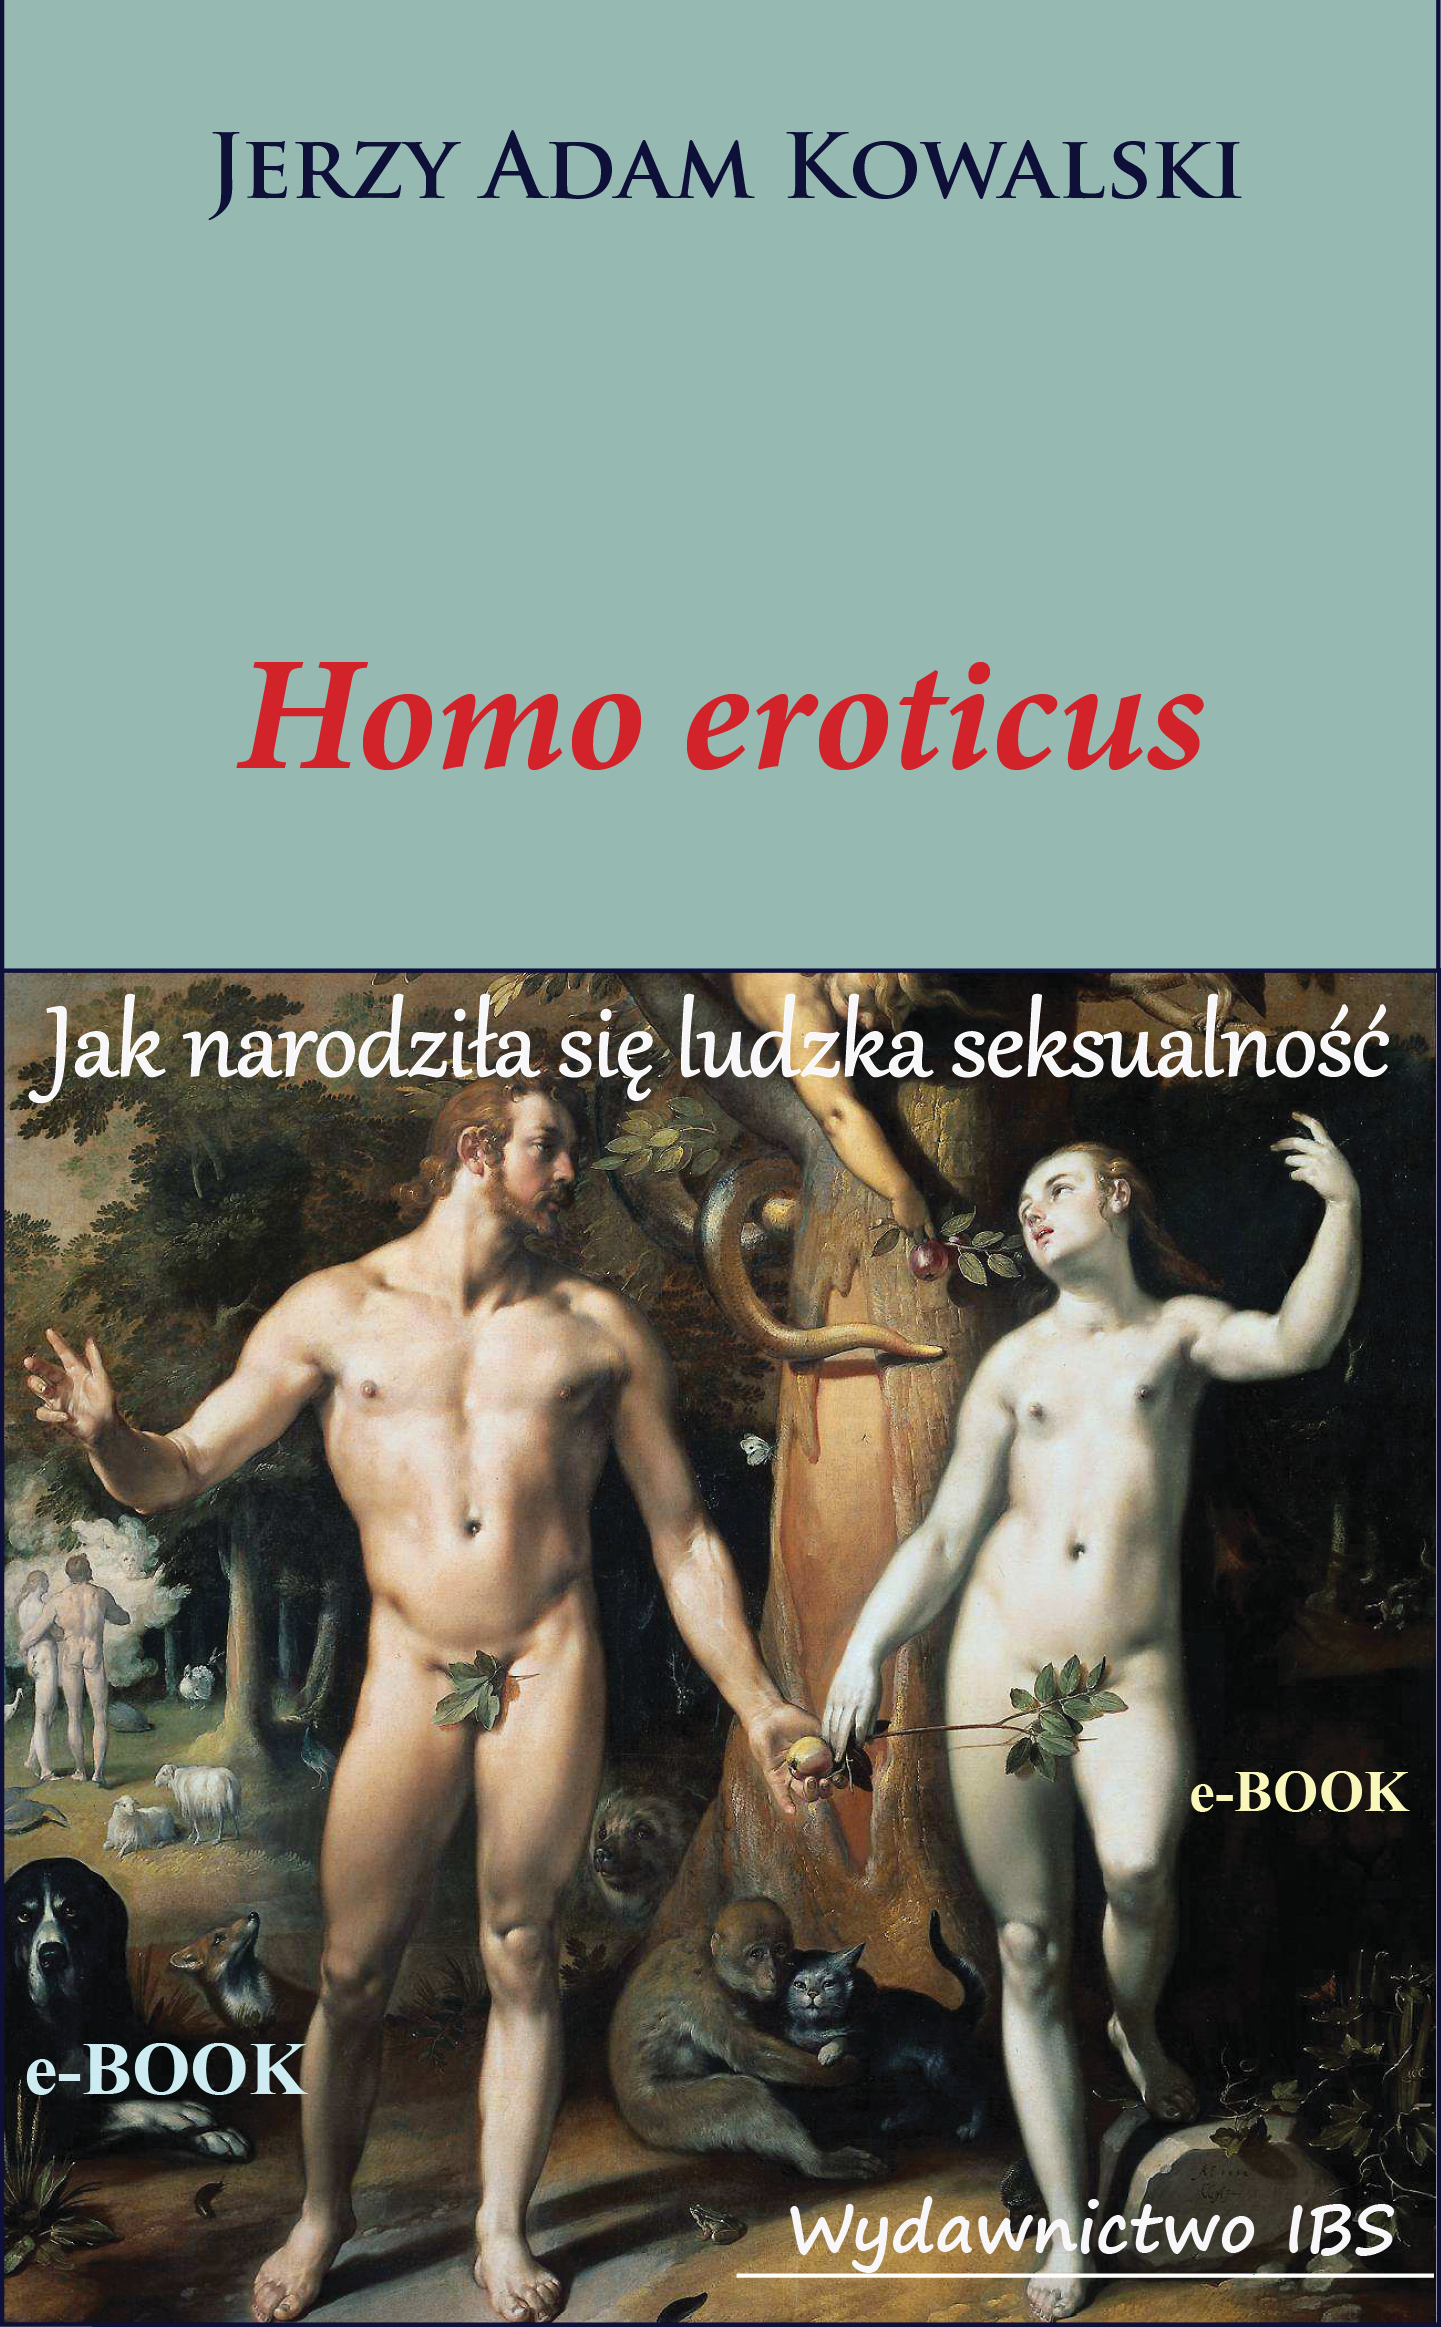 Homo erot ebook okladka